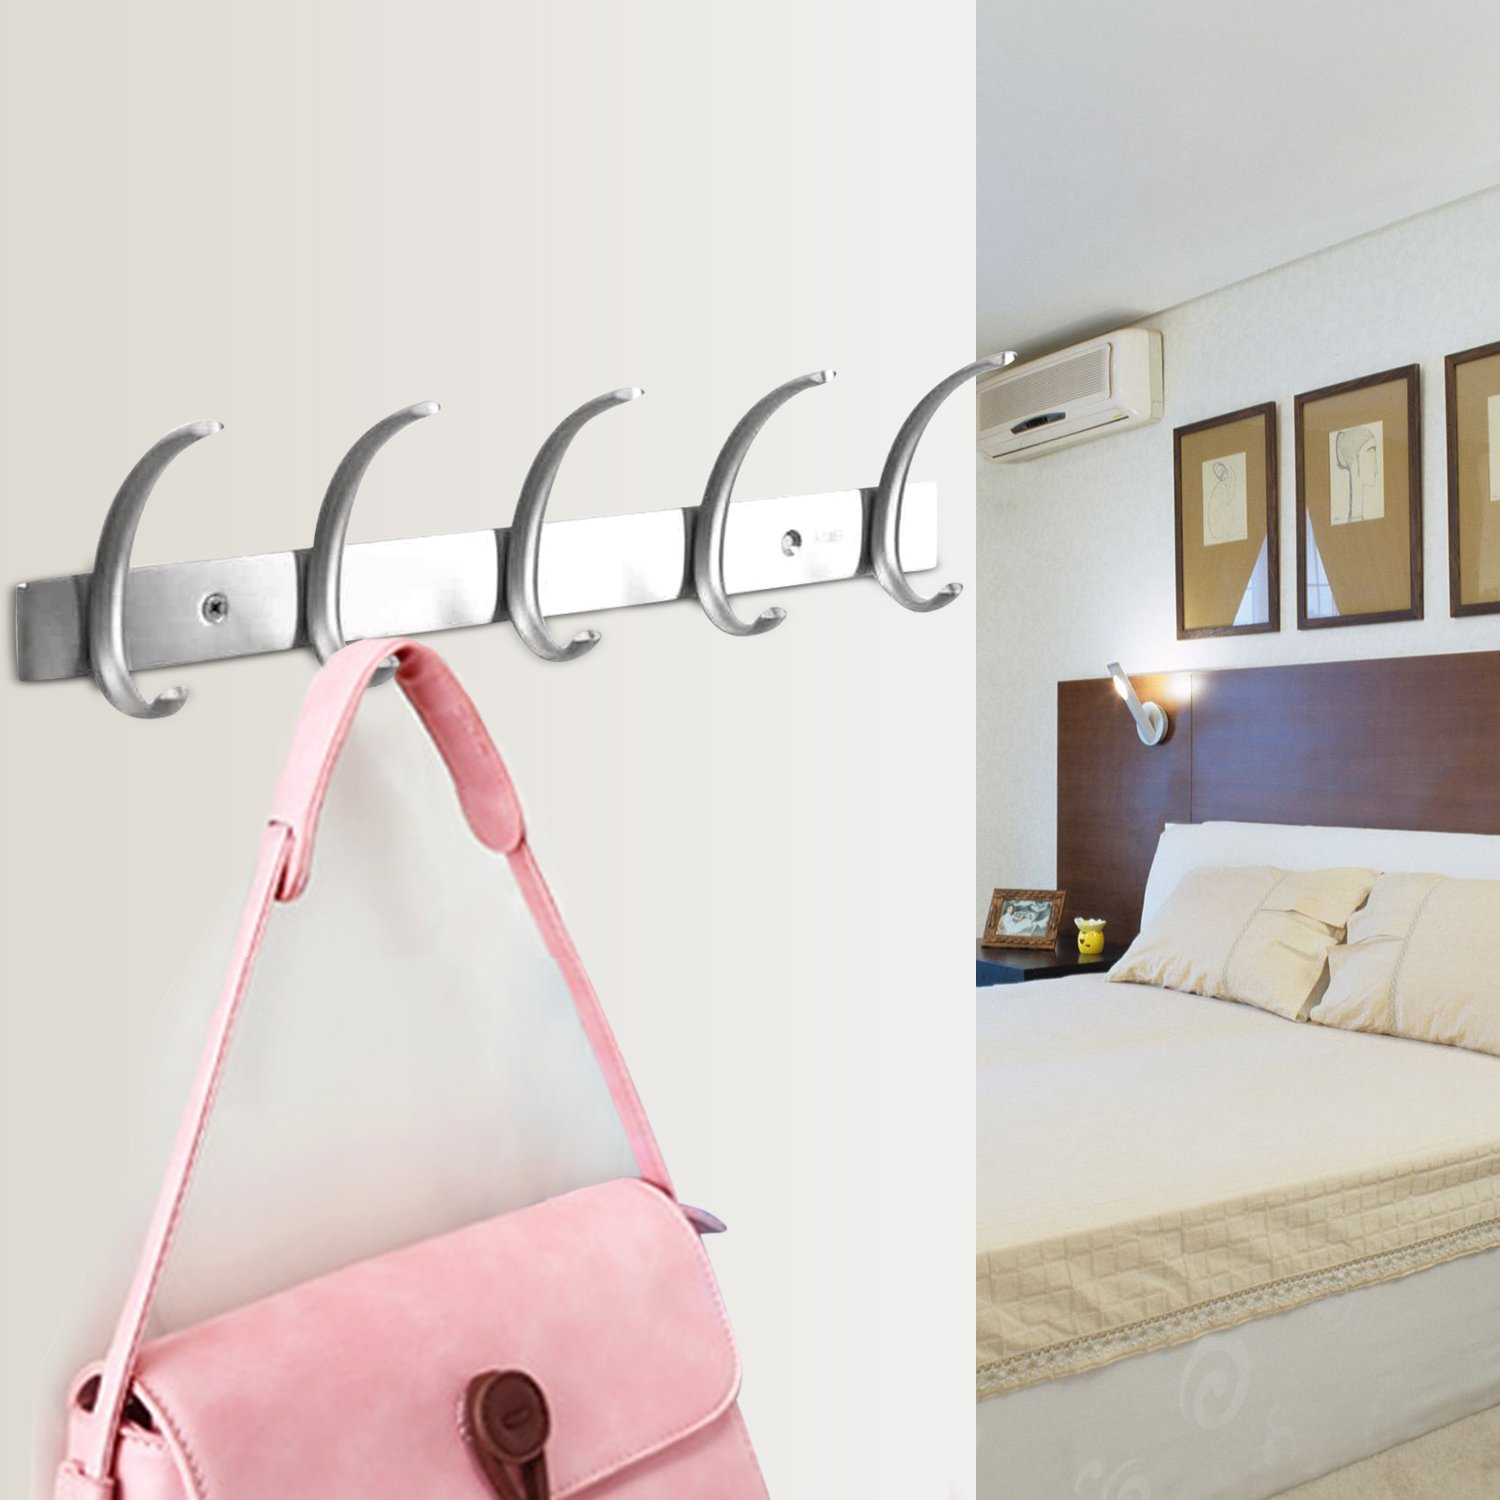 Dreamsbaku Coat Hooks Wall Mounted Robe Towel Racks for Kitchen Bedroom Bathroom and Office Stainless Steel 5 Hook